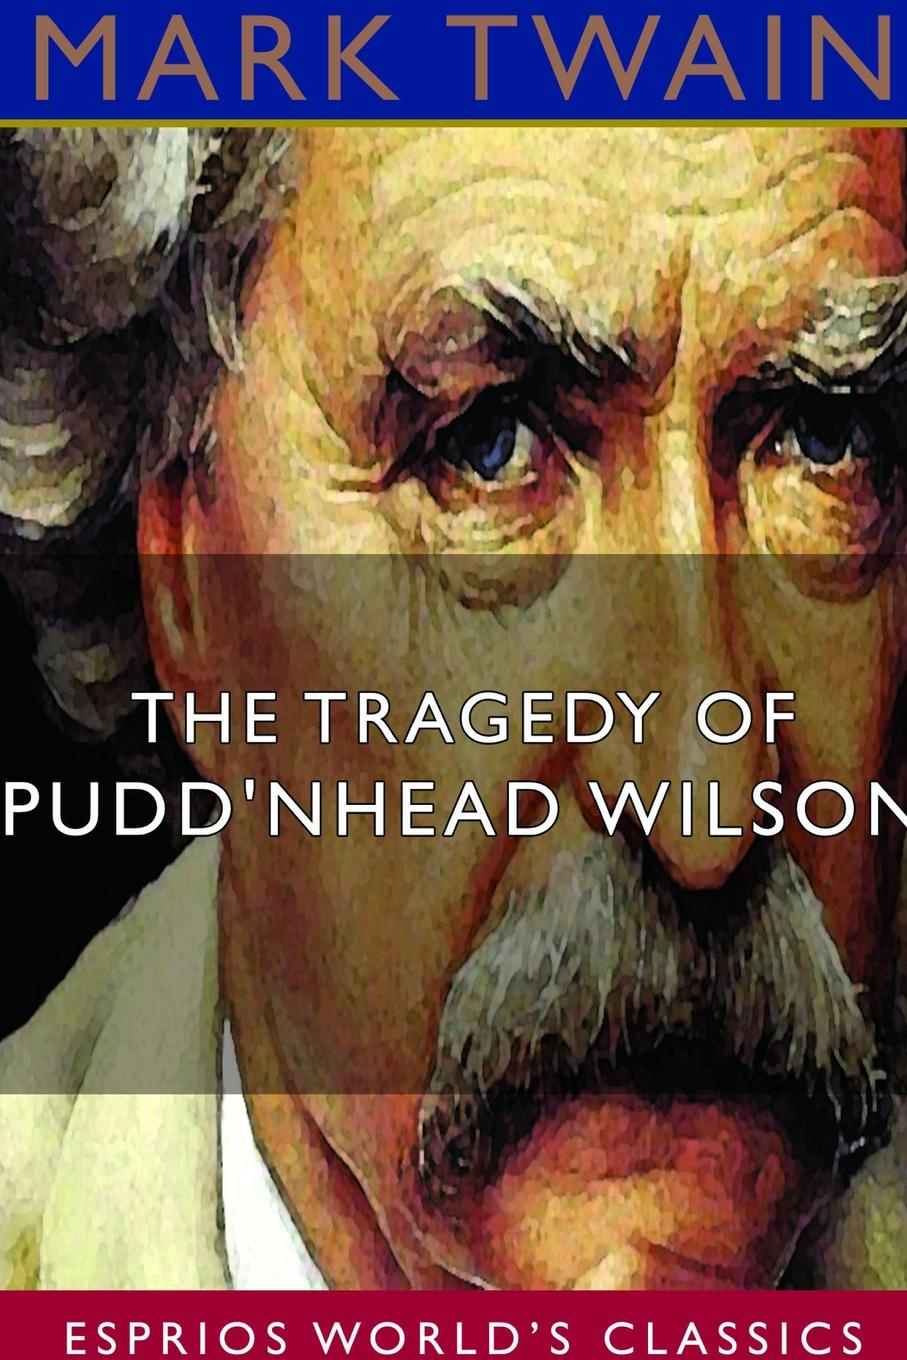 Mark Twain The Tragedy of Pudd'nhead Wilson (Esprios Classics) марк твен the tragedy of pudd nhead wilson